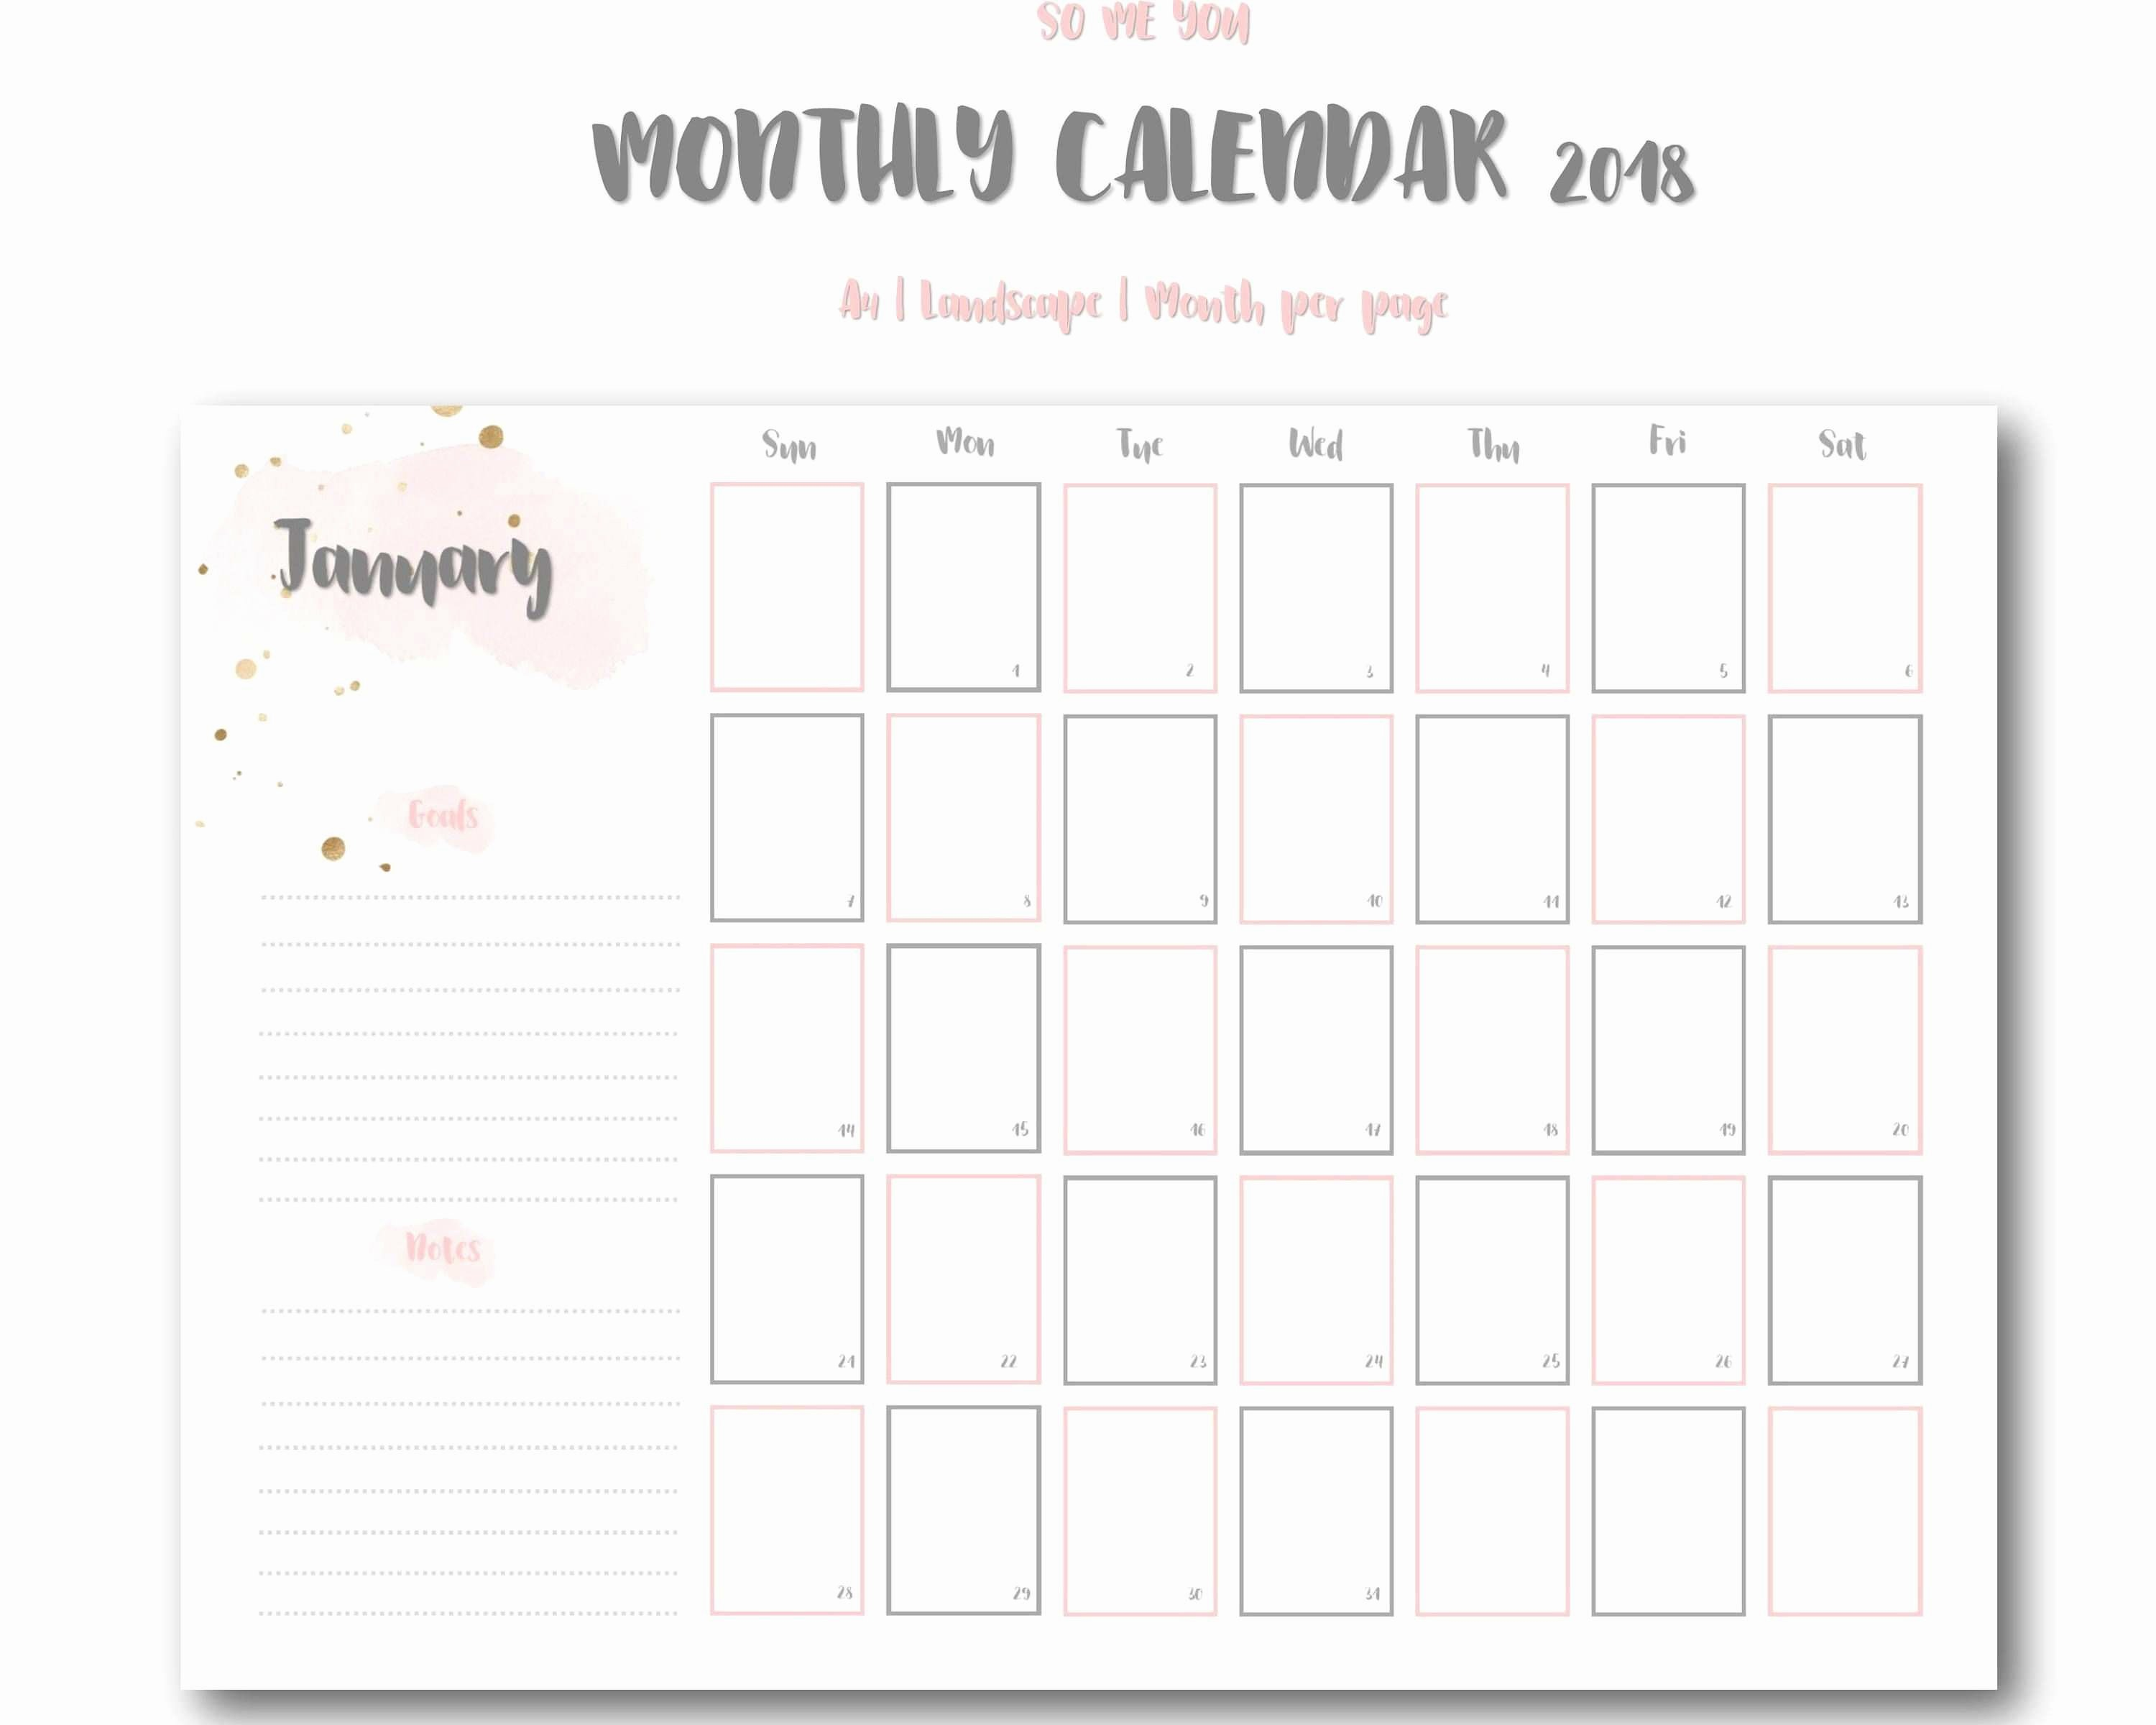 Marketing Calendar Template 2017 Fresh Luxury Monthly Marketing Calendar Template 2017